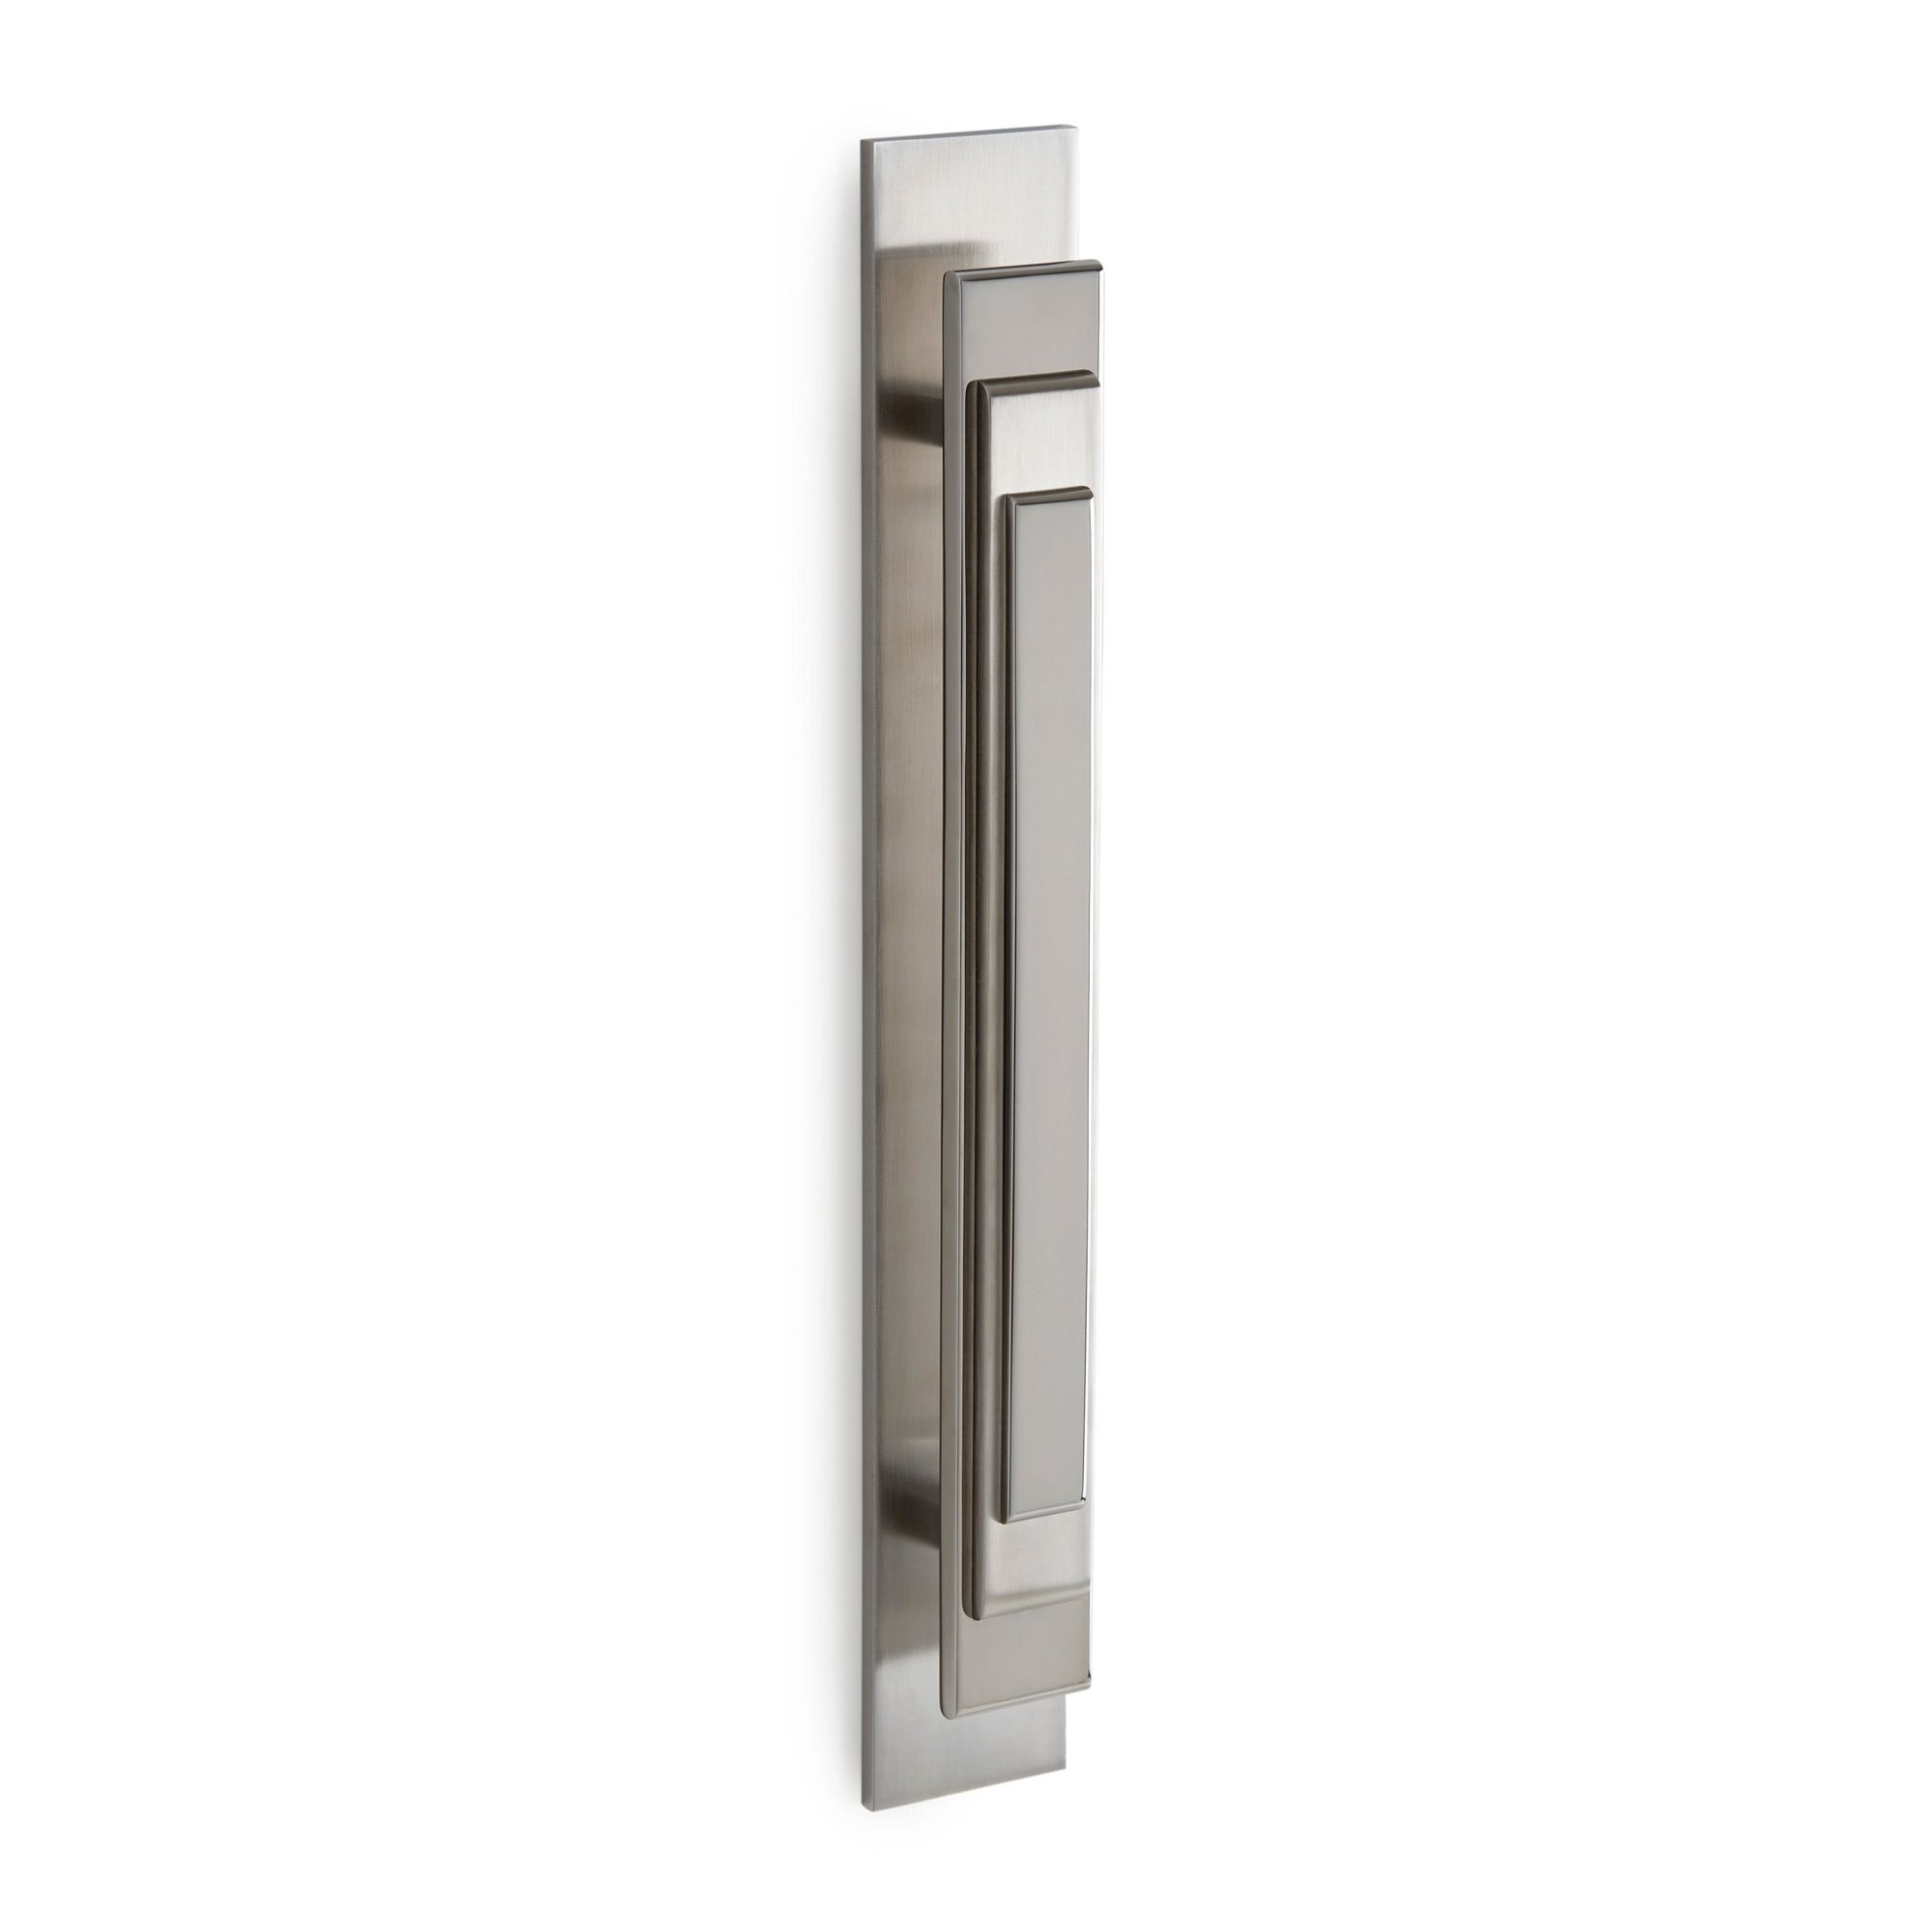 2010-BRPL-12-BN Sherle Wagner International Nouveau Bar Pull in Brushed Nickel metal finish